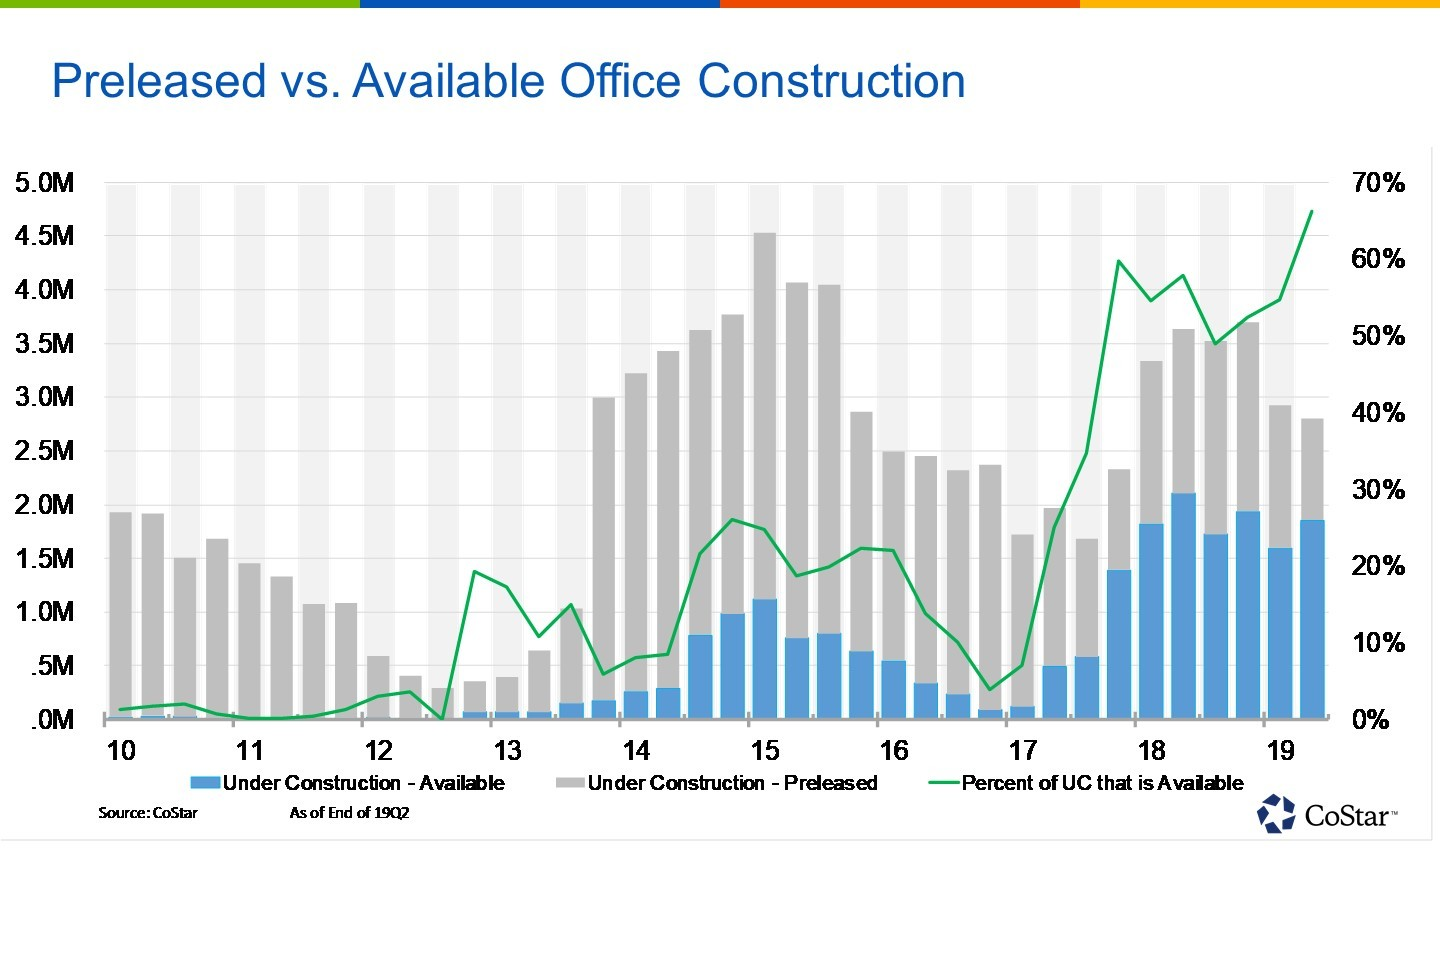 Rising Share of Speculative Construction Points to Developers